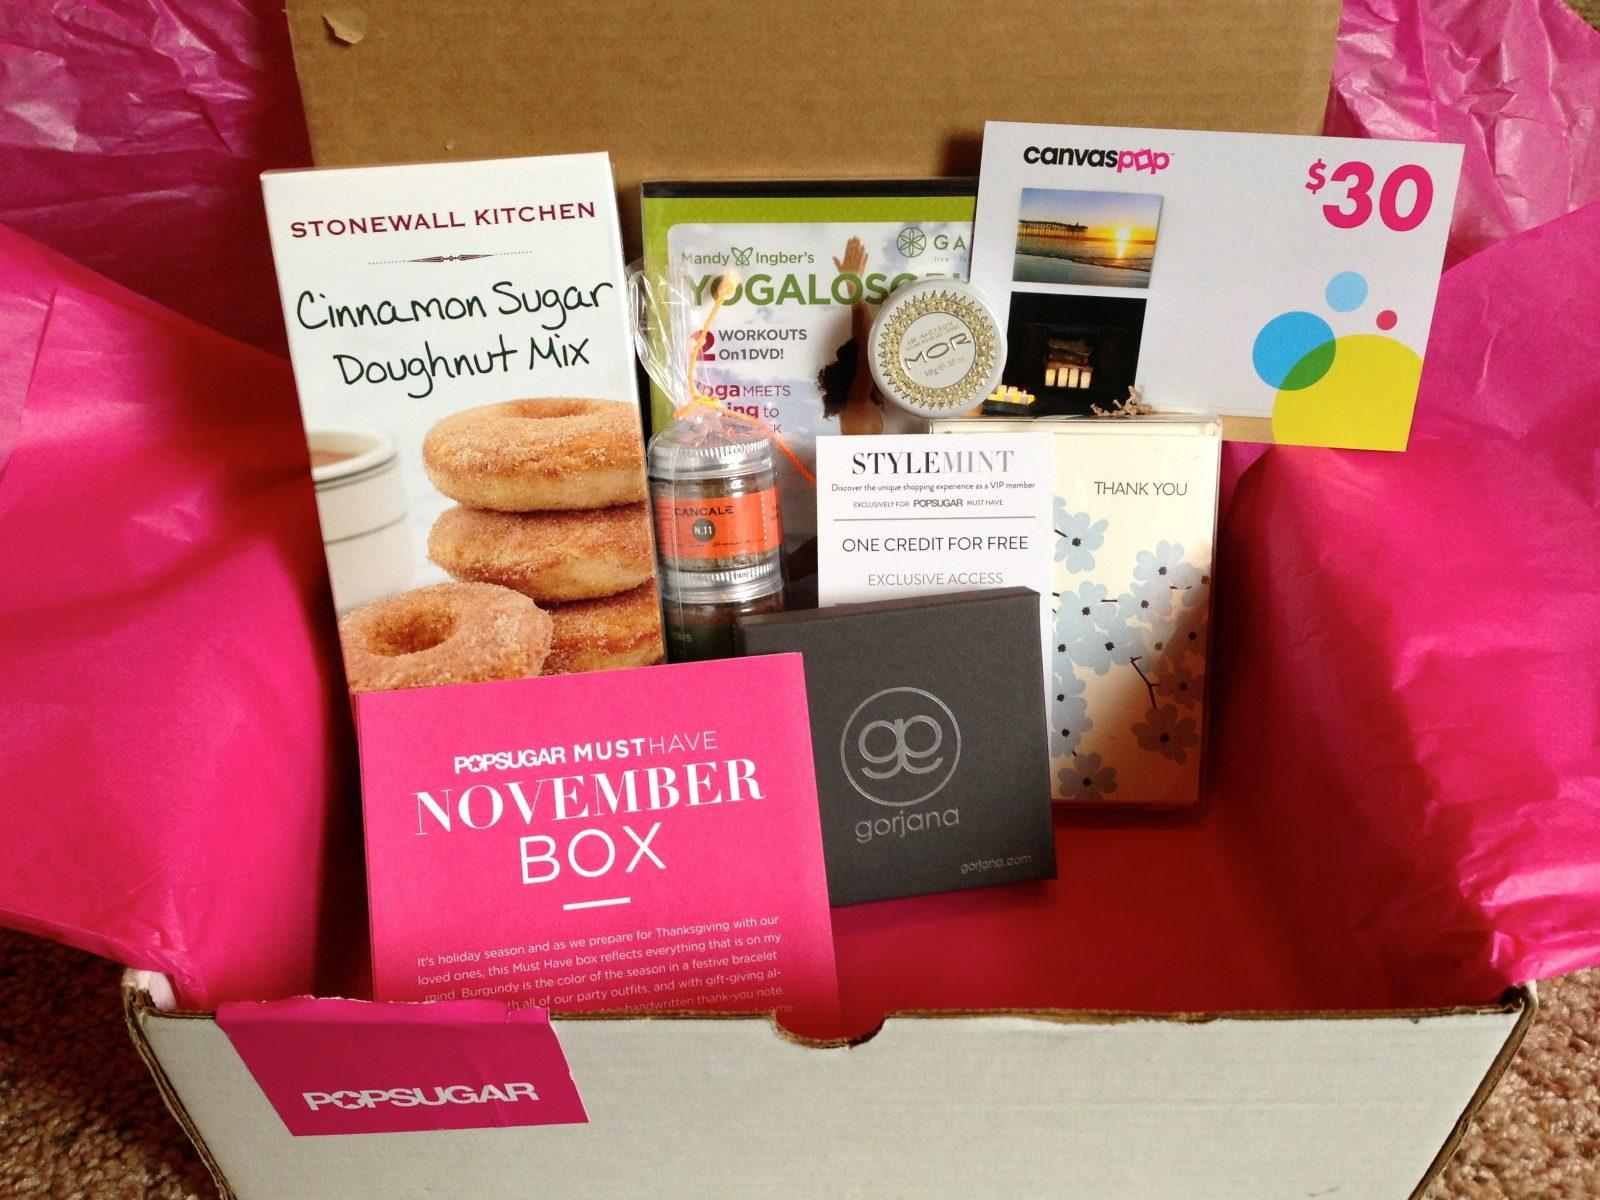 The latest pdfdocnetwork.ga coupon codes at CouponFollow. Use coupon code to save $10 off your first PopSugar Must Have Box! B10 Show Coupon Code. Shared by @MacKidRockville. 20%. OFF COUPON CODE Save 20% Off. Bye-Bye, Ponytail! 11 Easy Hairdos For Your Daughter Dun miss our 20% off sale with coupon code!.